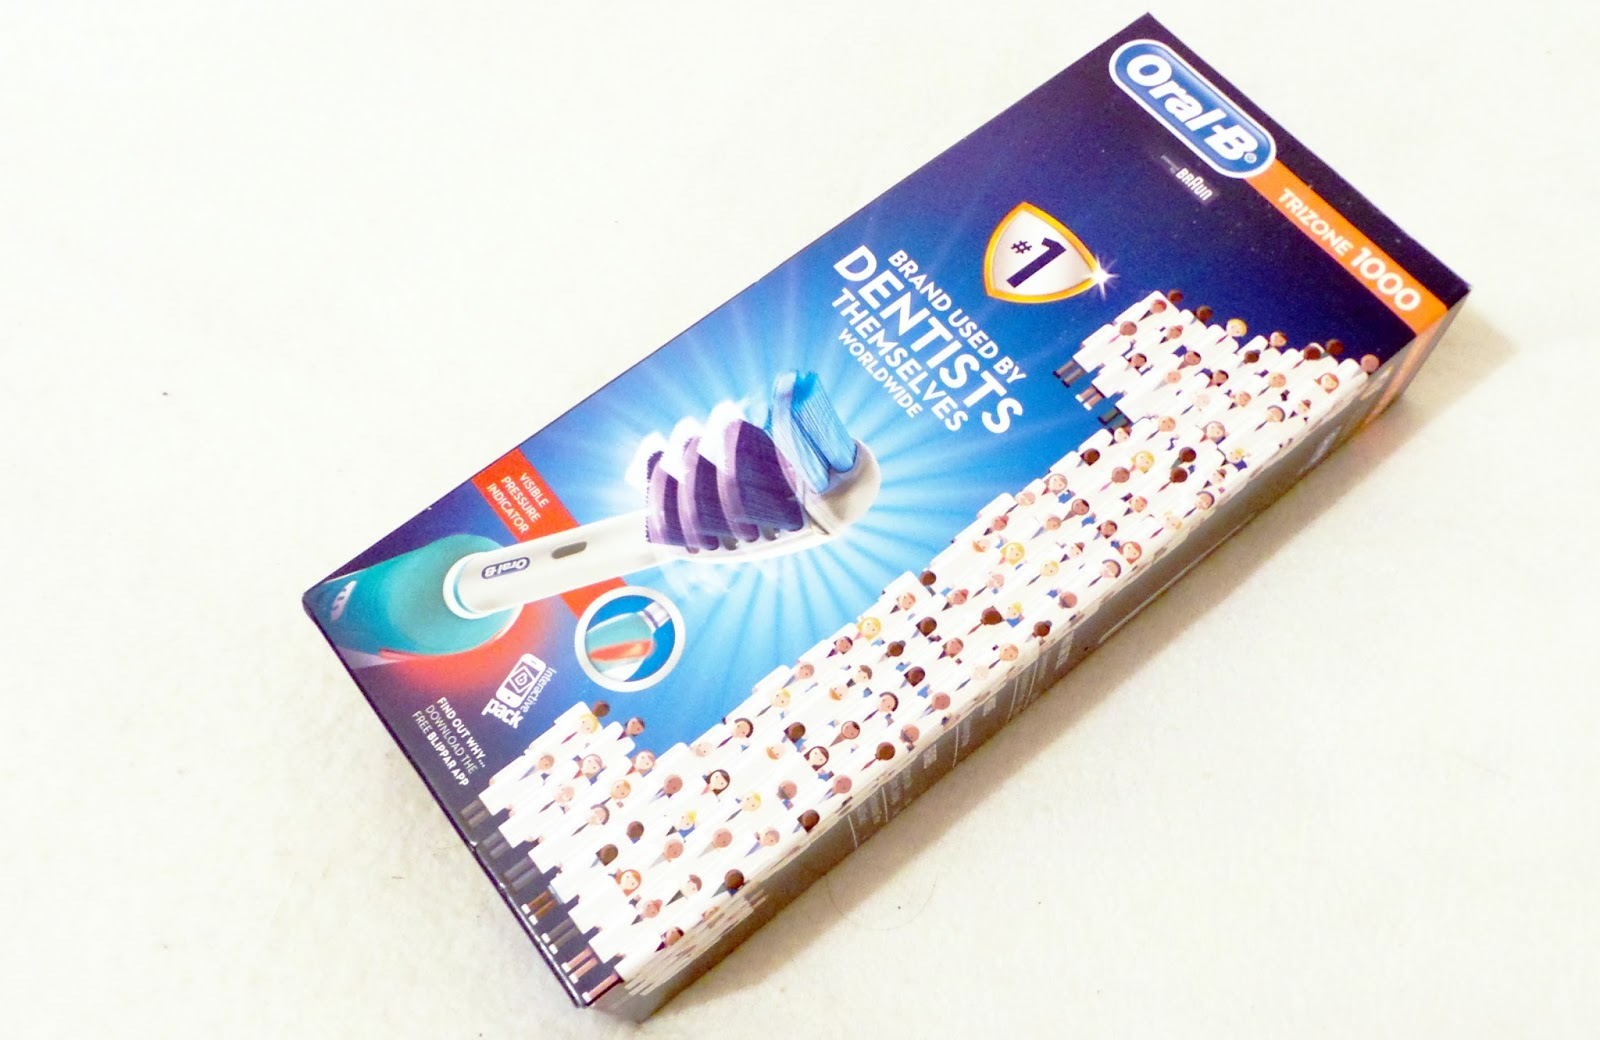 birthday haul blog post - Oral B Trizone 1000 Electric Toothbrush